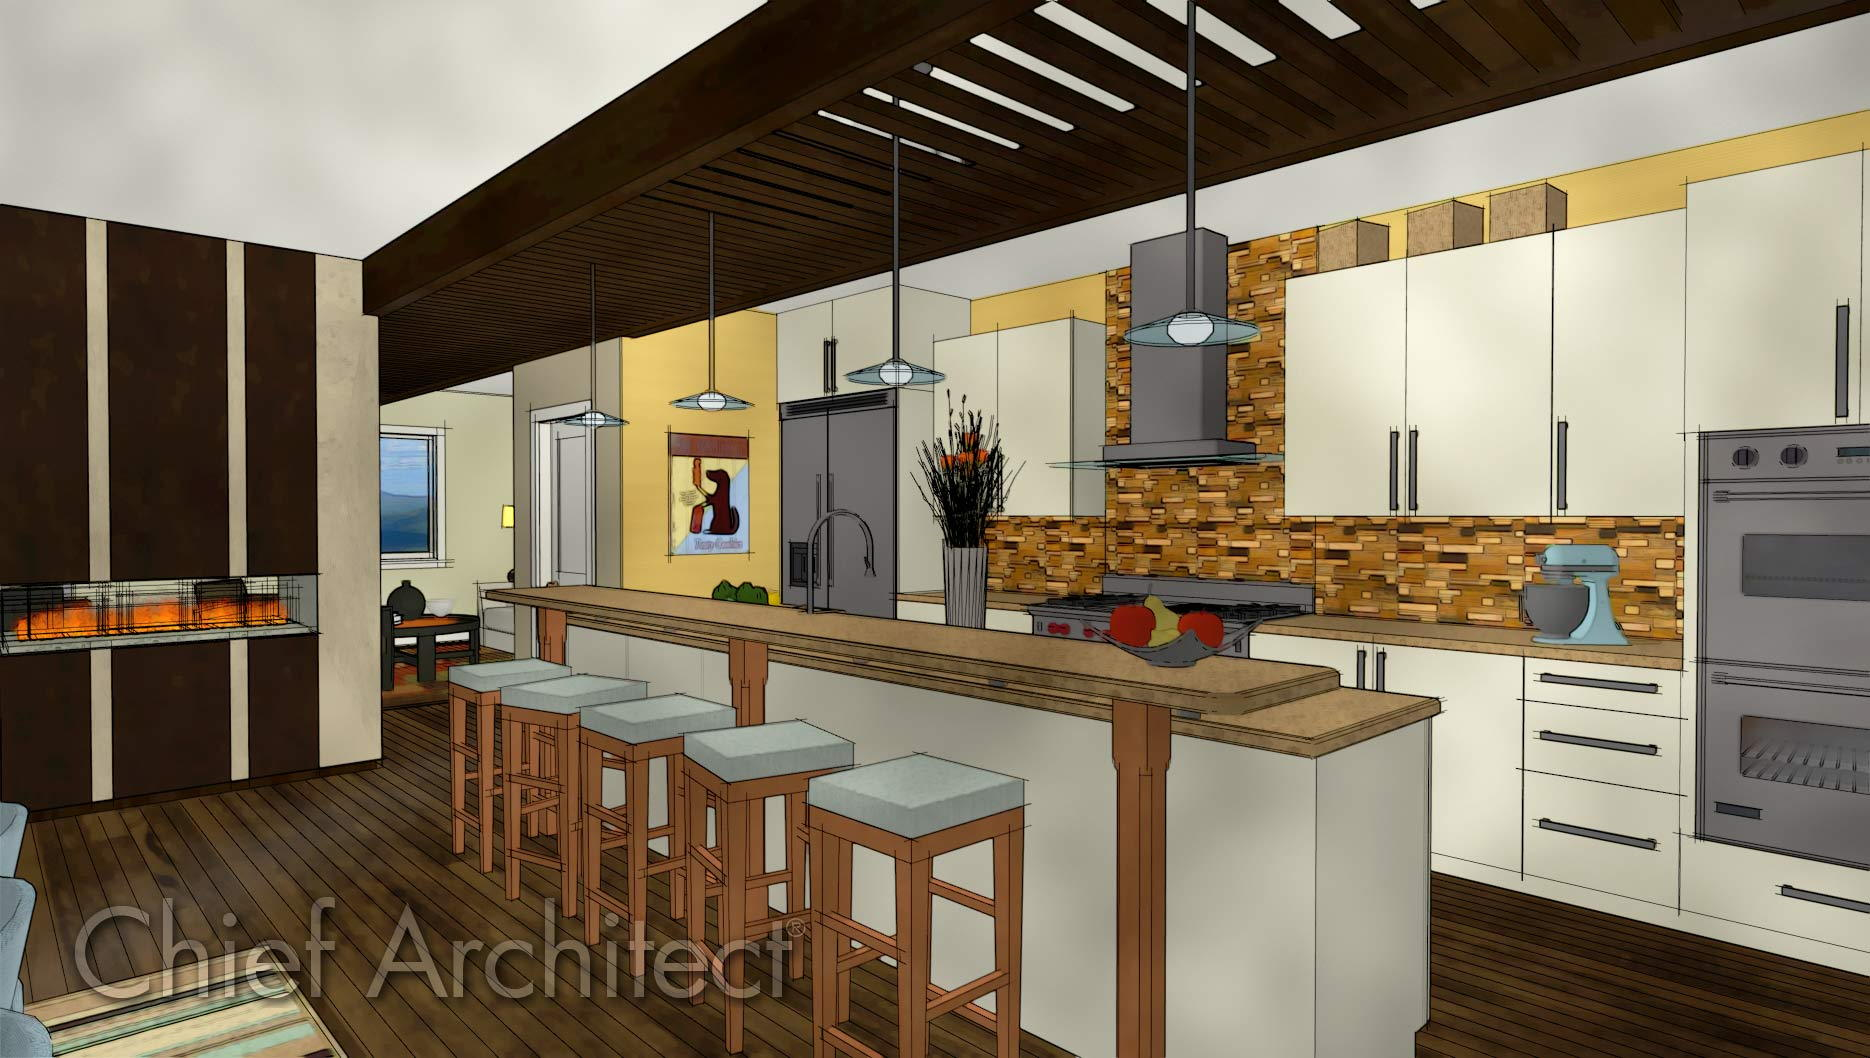 Chief Architect Home Design - Samples Gallery on